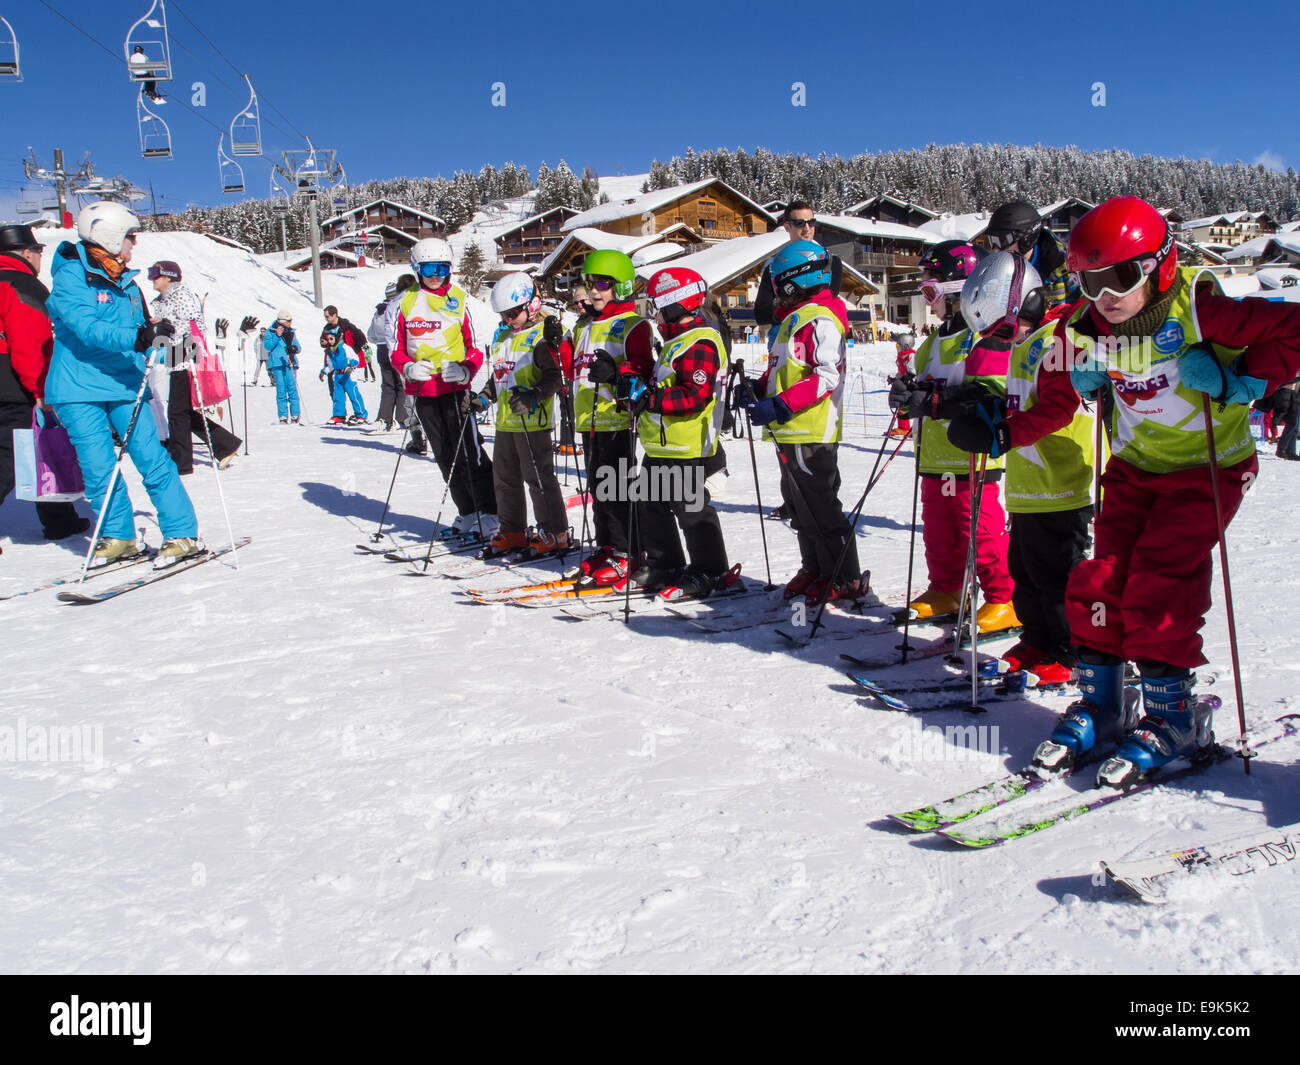 group of children on  skis wearing ski clothes and helmets departing for a  skiing lesson with a ski instructor - Stock Image